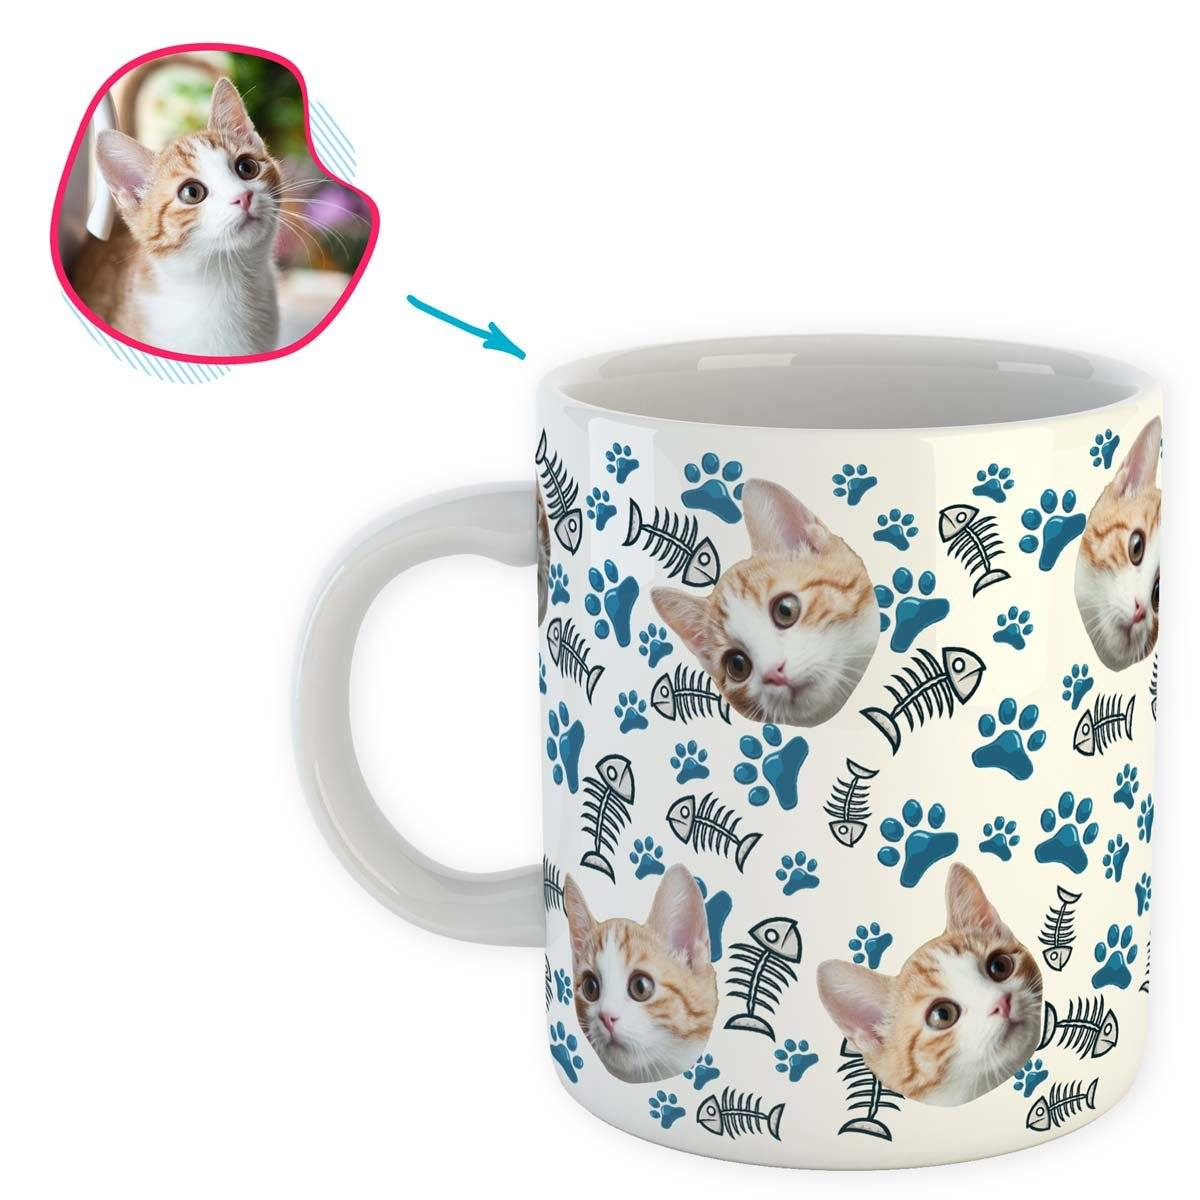 white Cat mug personalized with photo of face printed on it